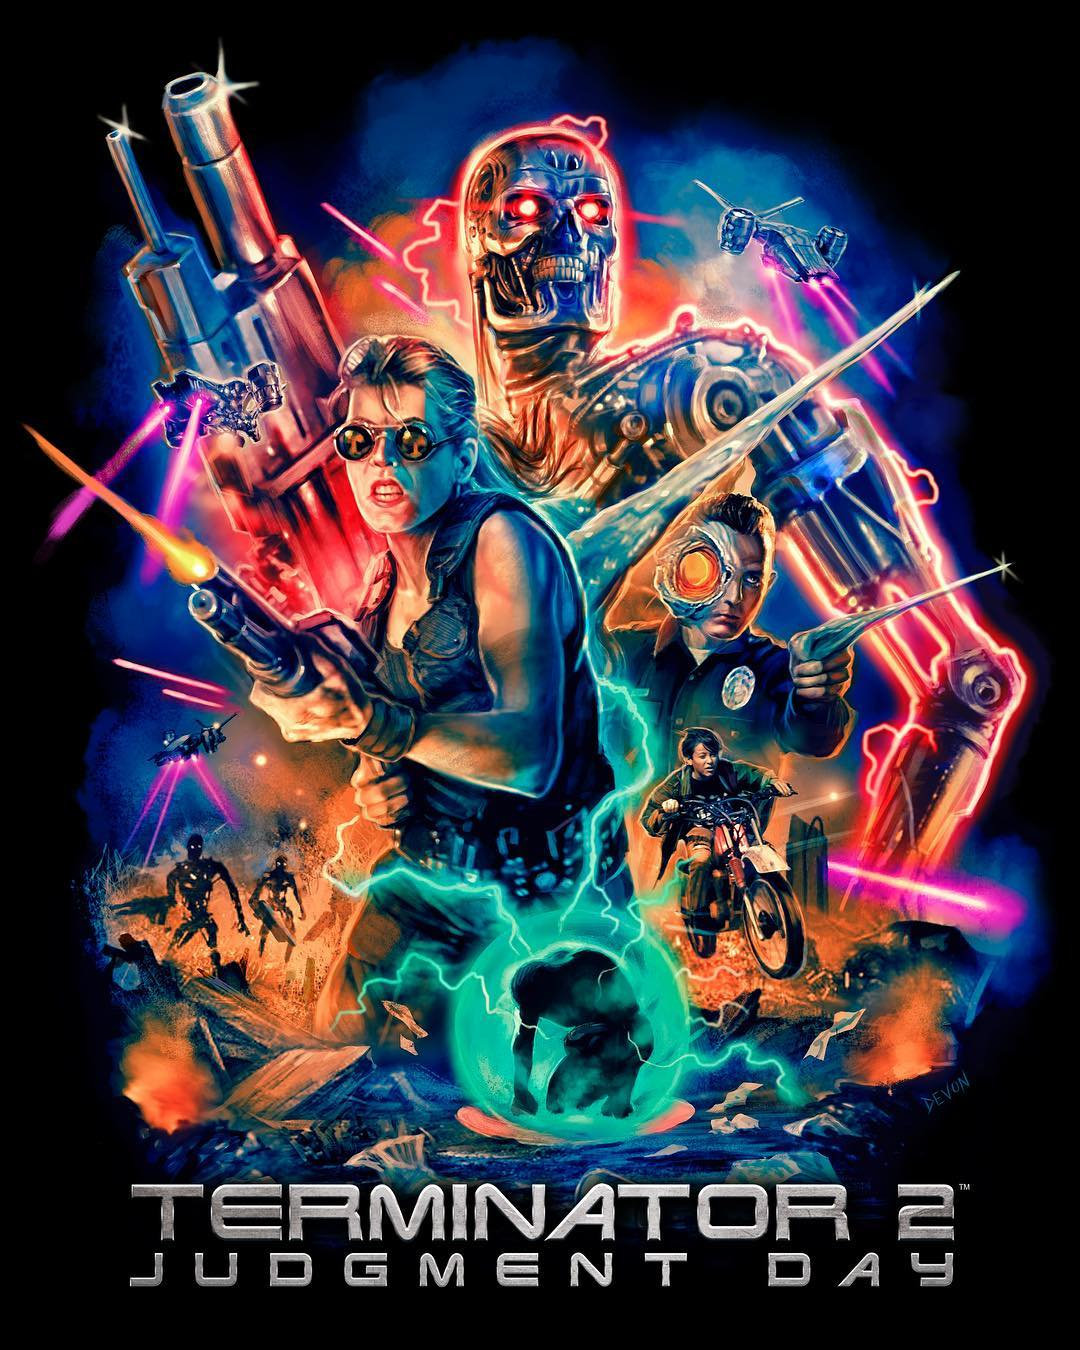 TERMINATOR 2: JUDGMENT DAY Collection: Part 1  Now Available from Cavity Colors